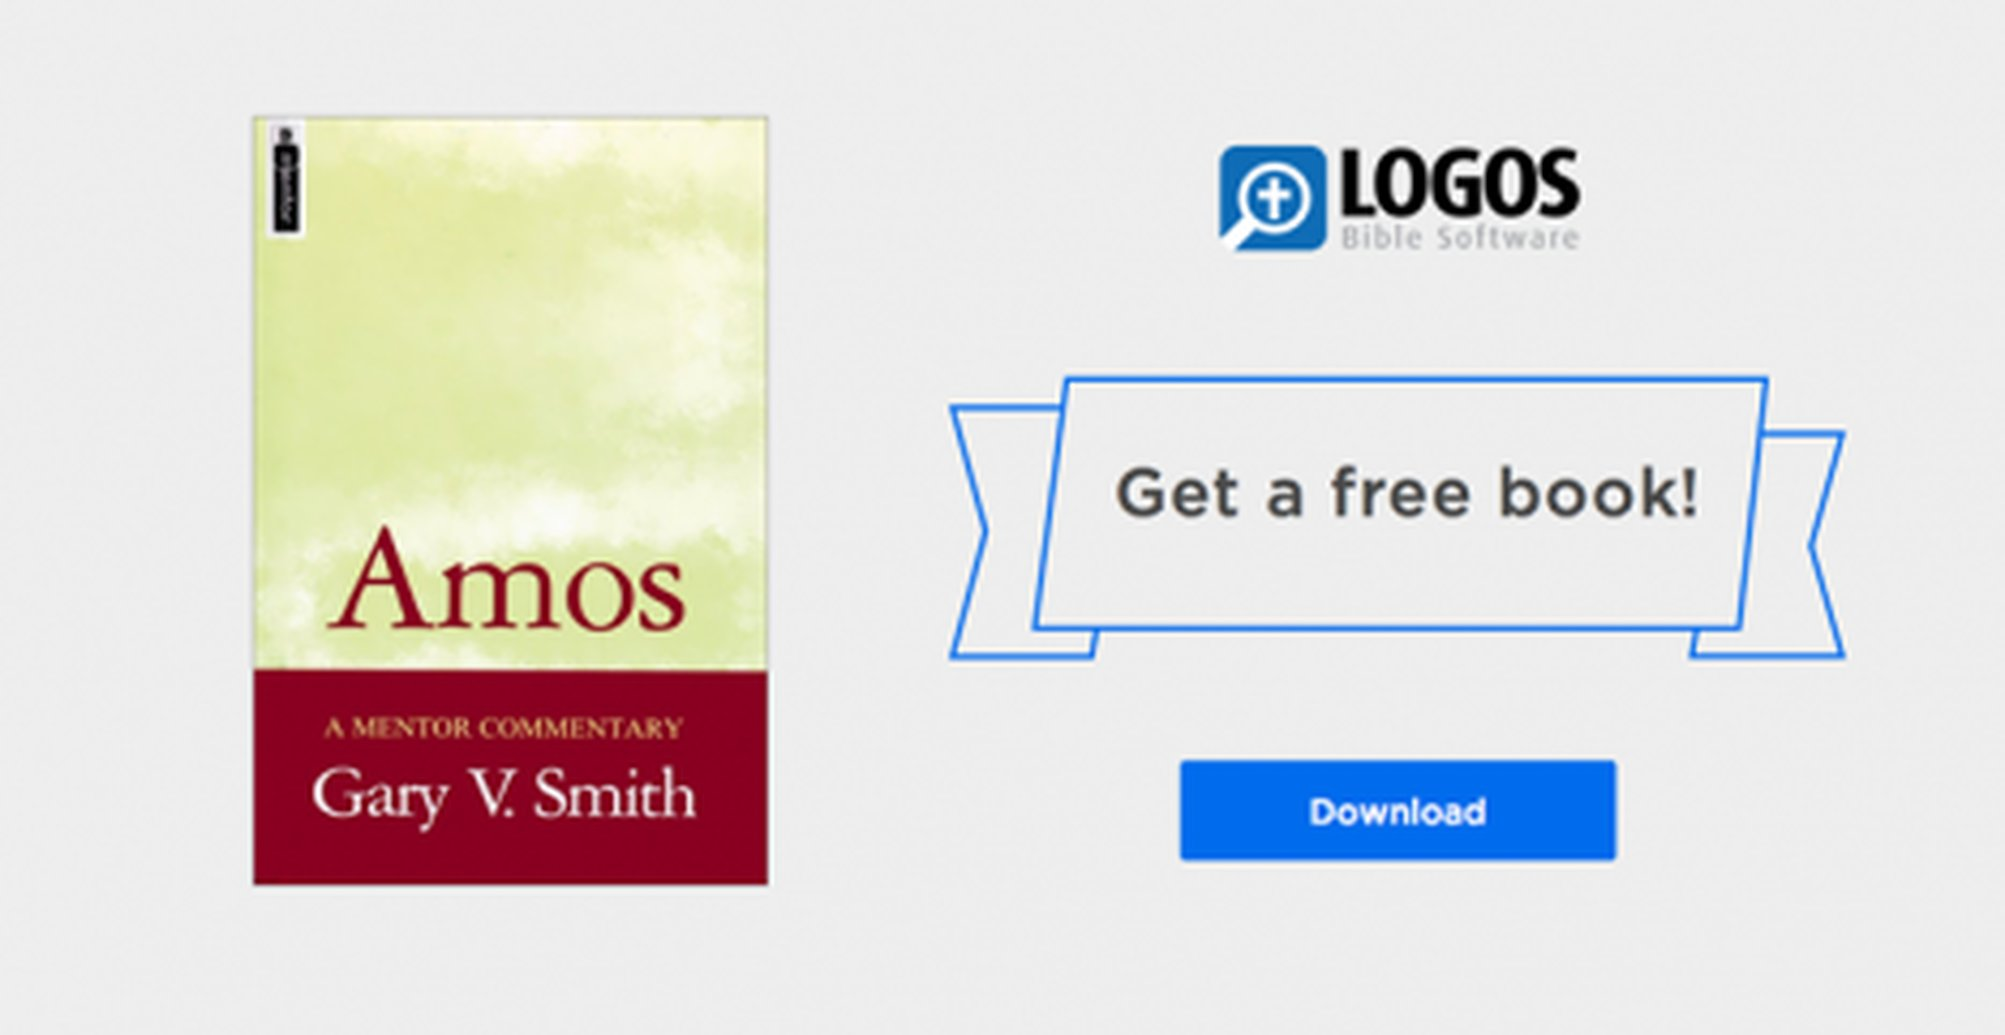 Get Amos: A Mentor Commentary Free on Logos Bible Software